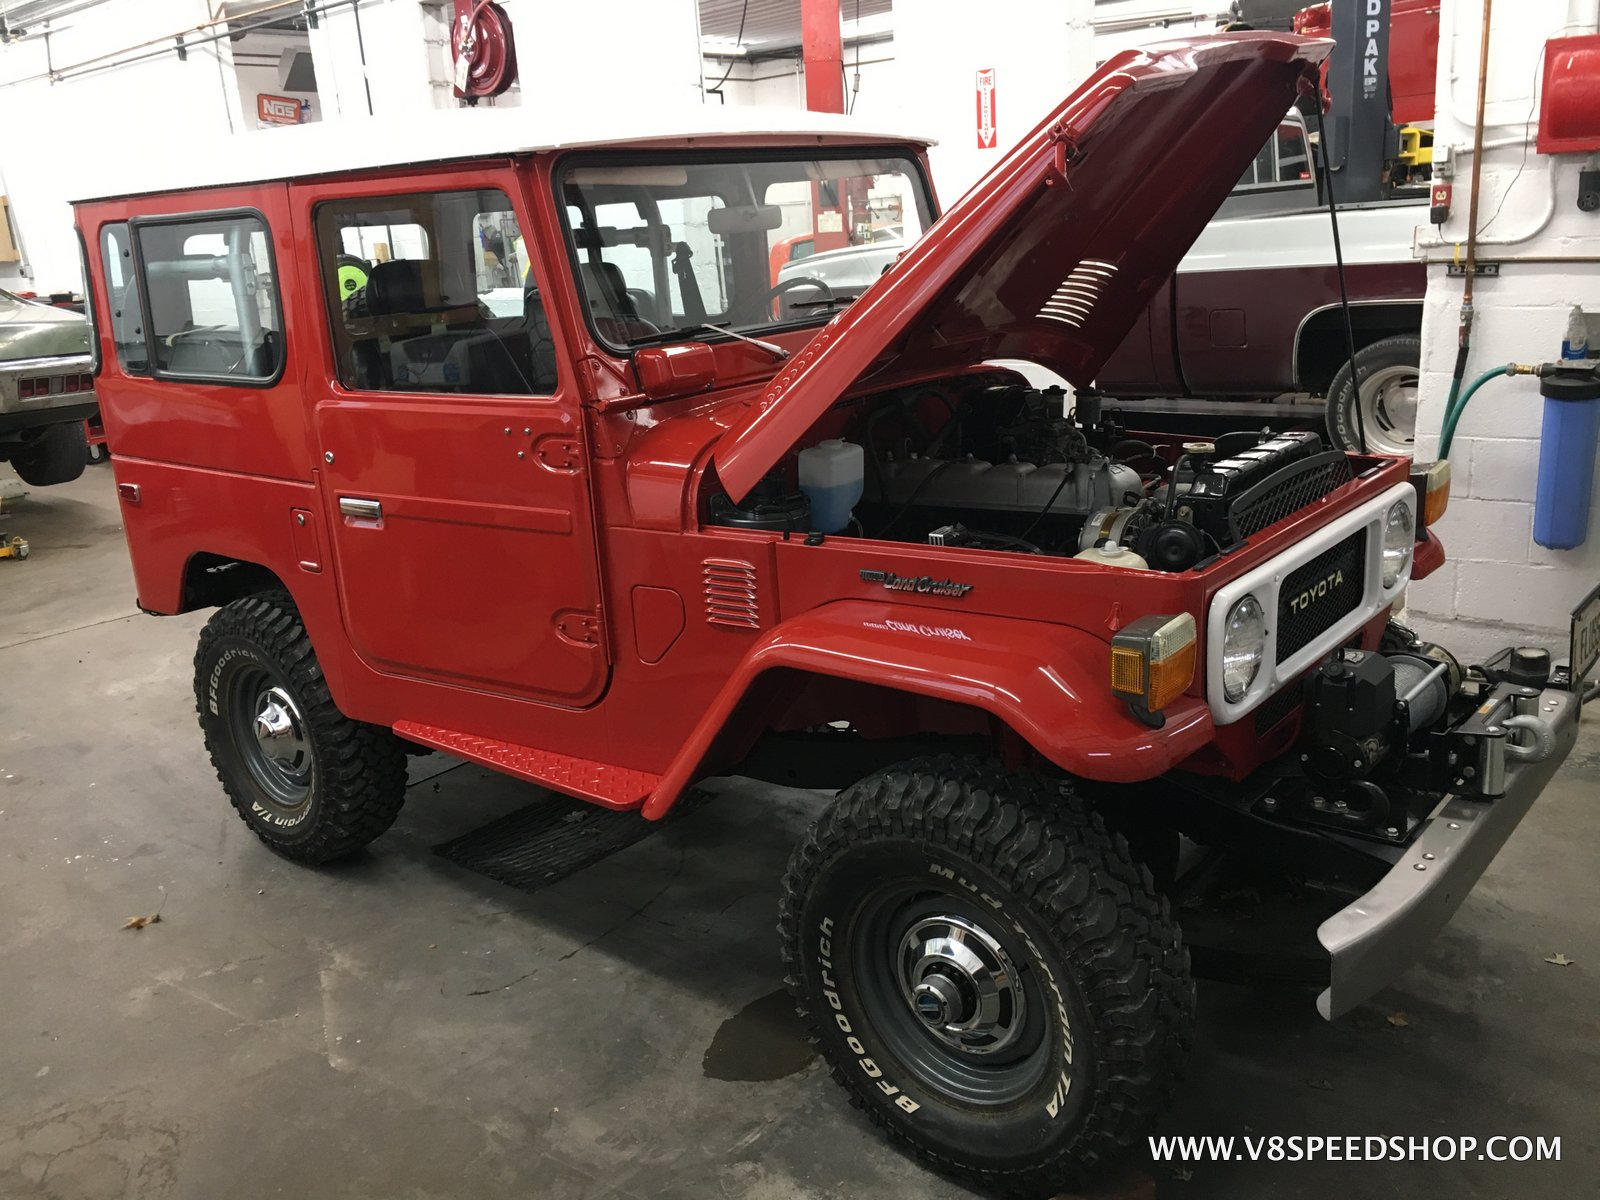 1979 Toyota Land Cruiser Maintenance at the V8 Speed and Resto Shop